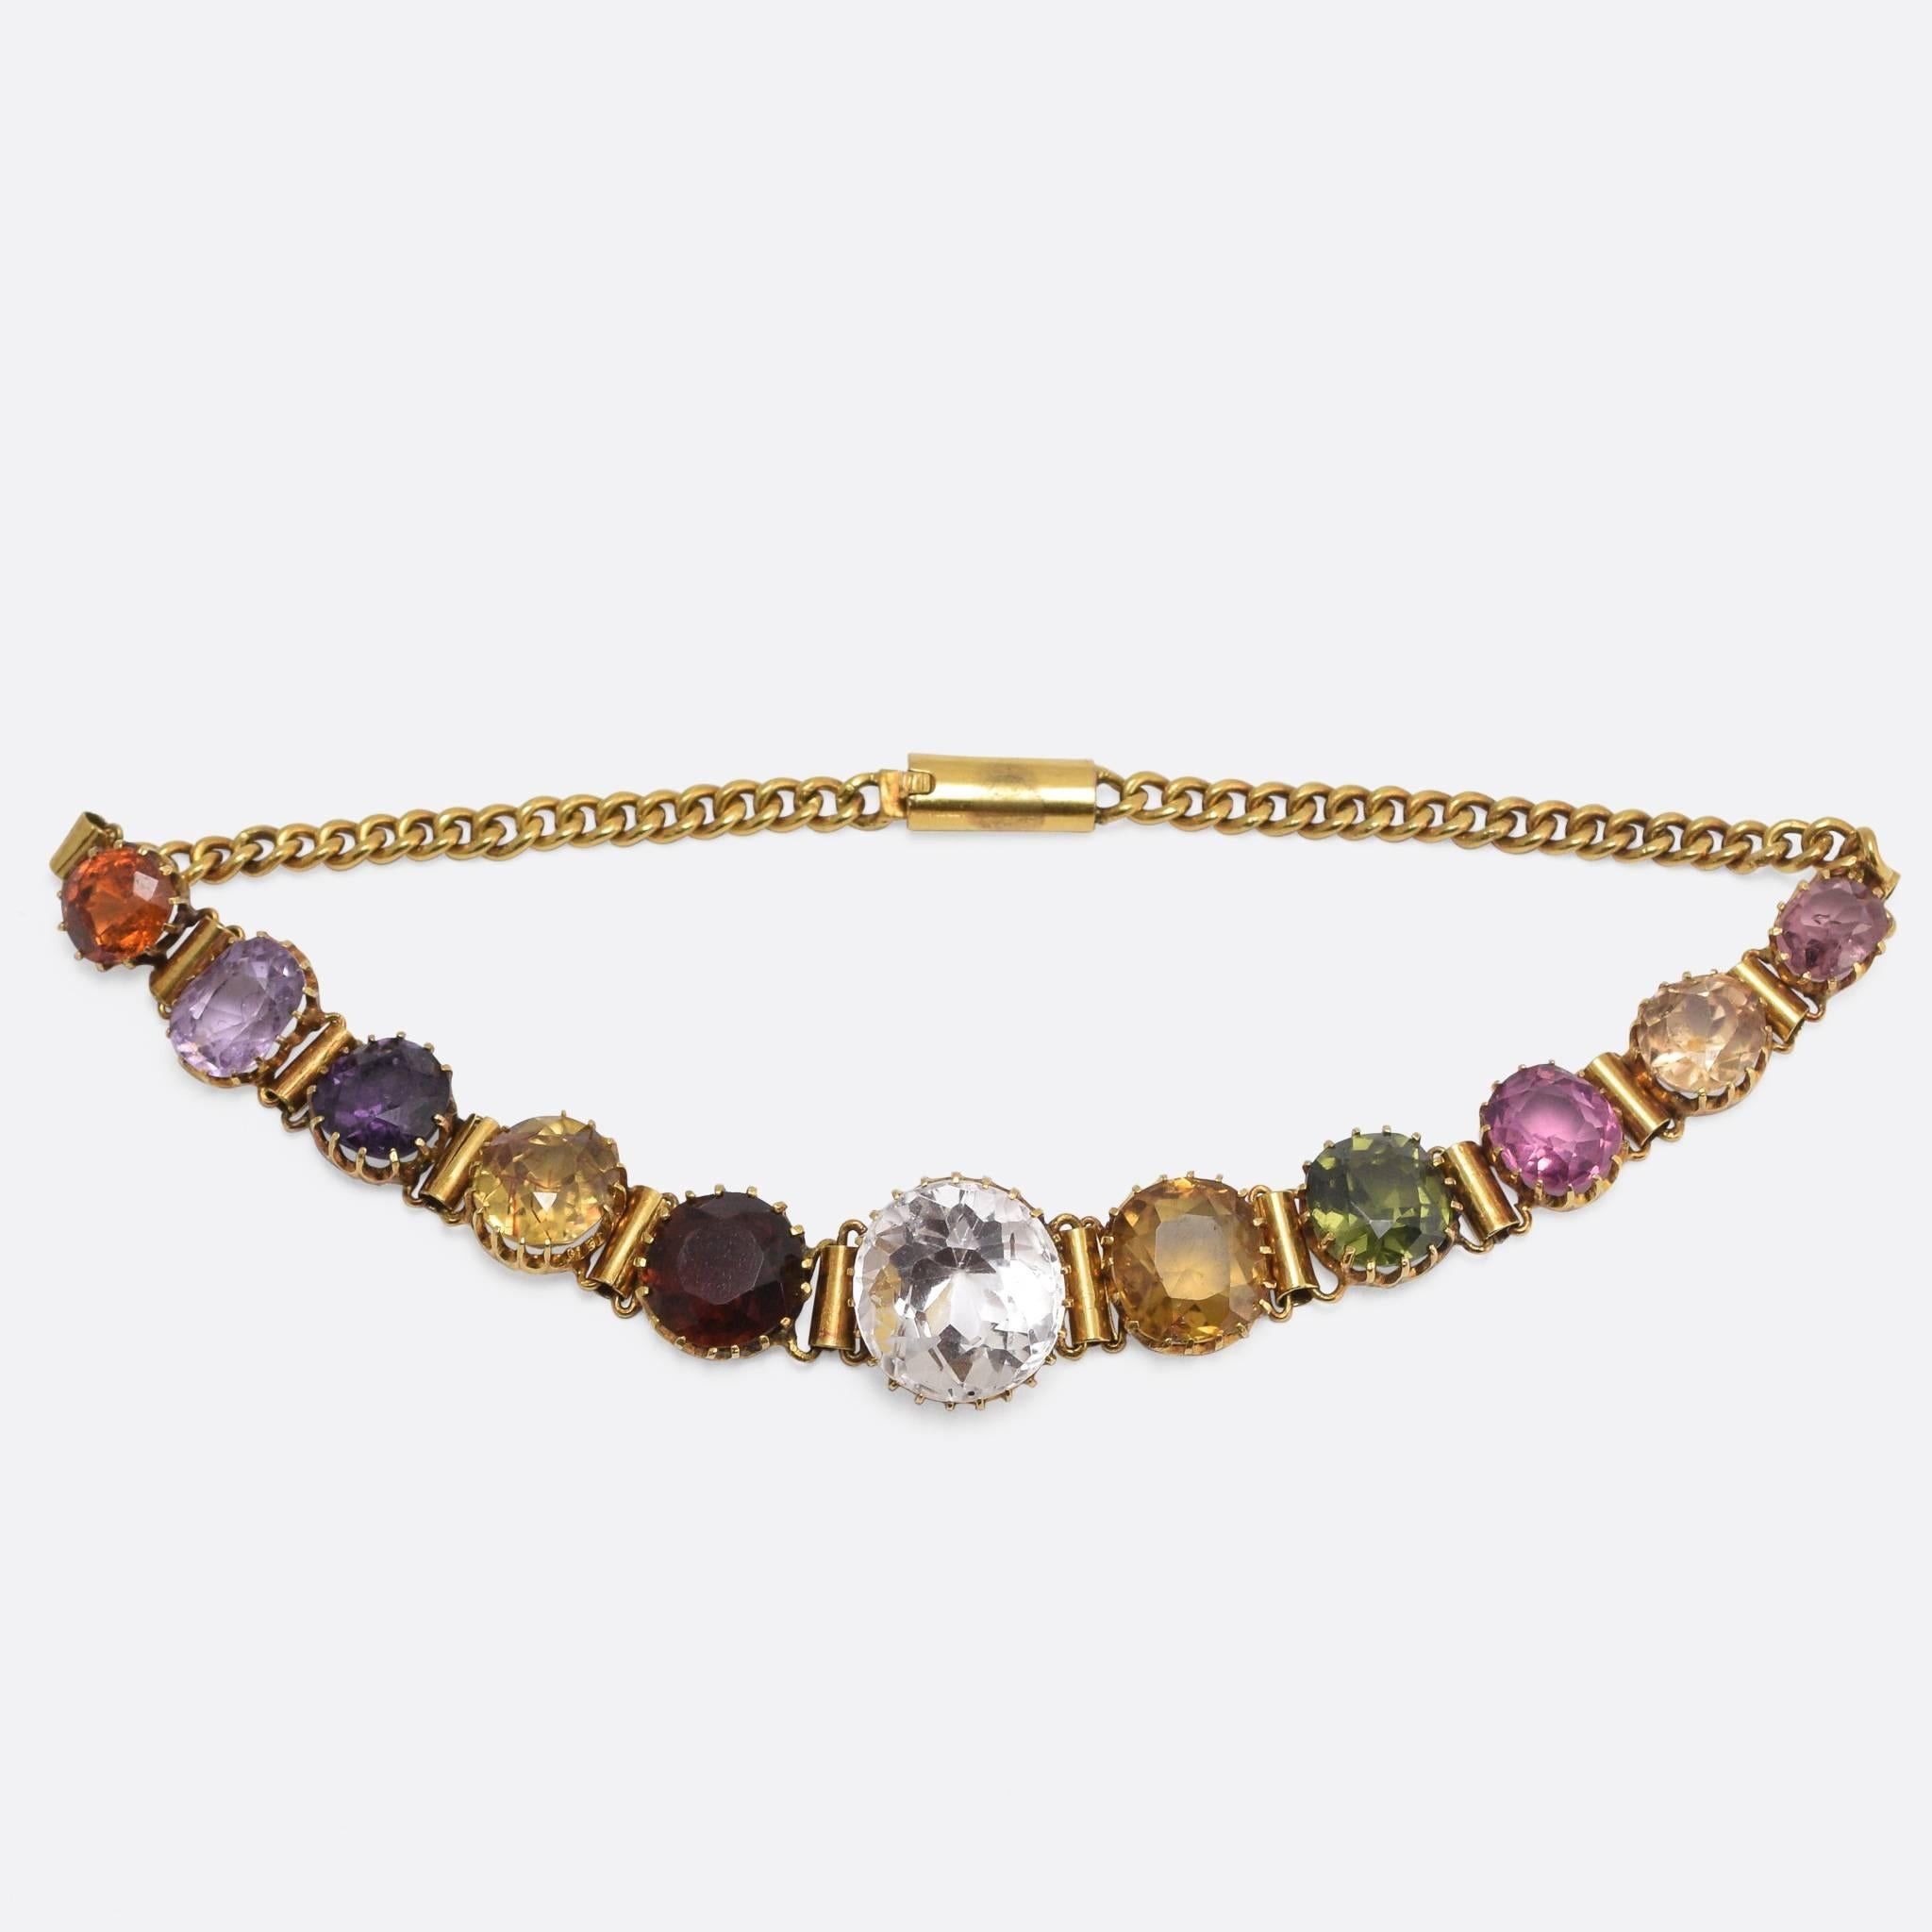 eco gem christies bracelet set christie bangle online jewels gold kutchinsky s and